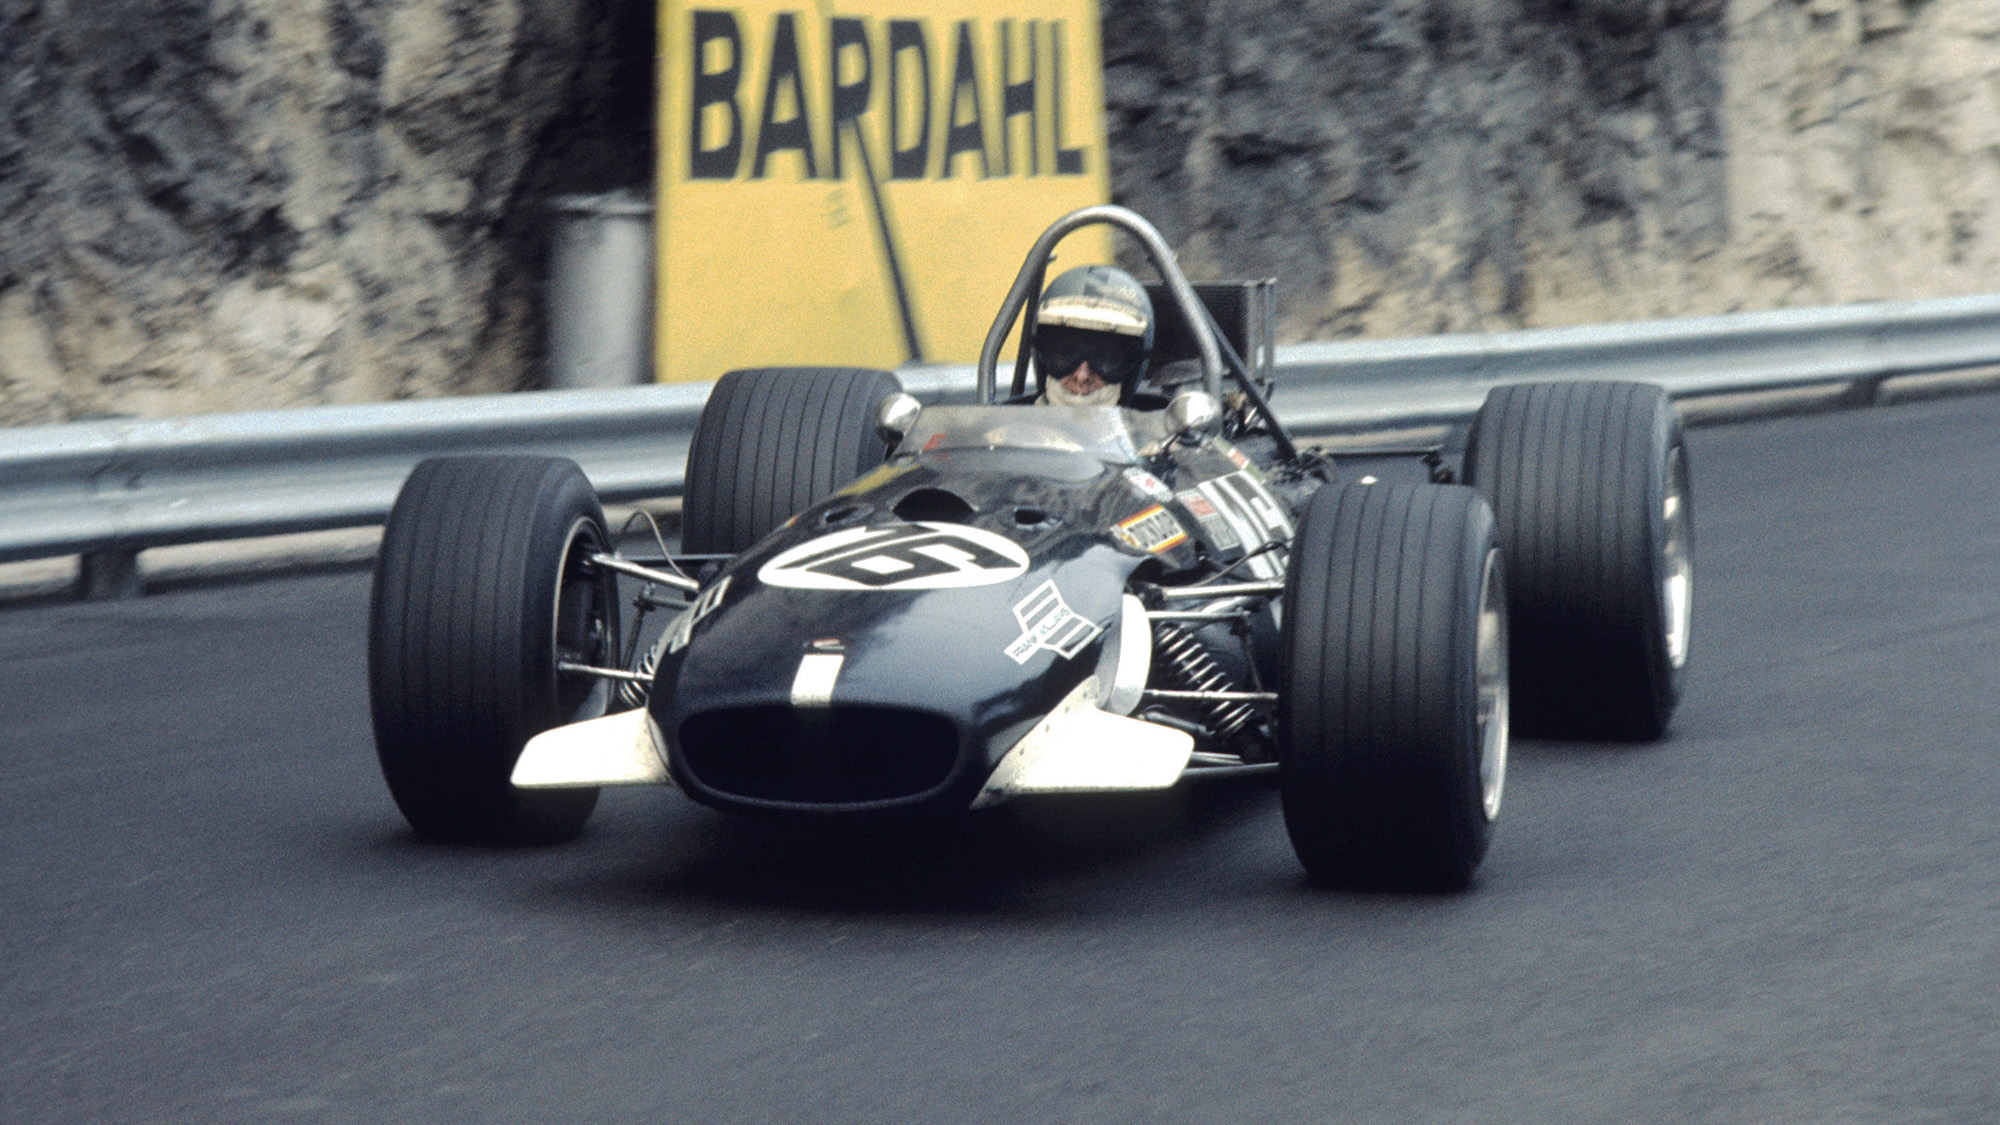 Piers Courage driving a Brabham BT26A in the 1969 Formula 1 Monaco Grand Prix